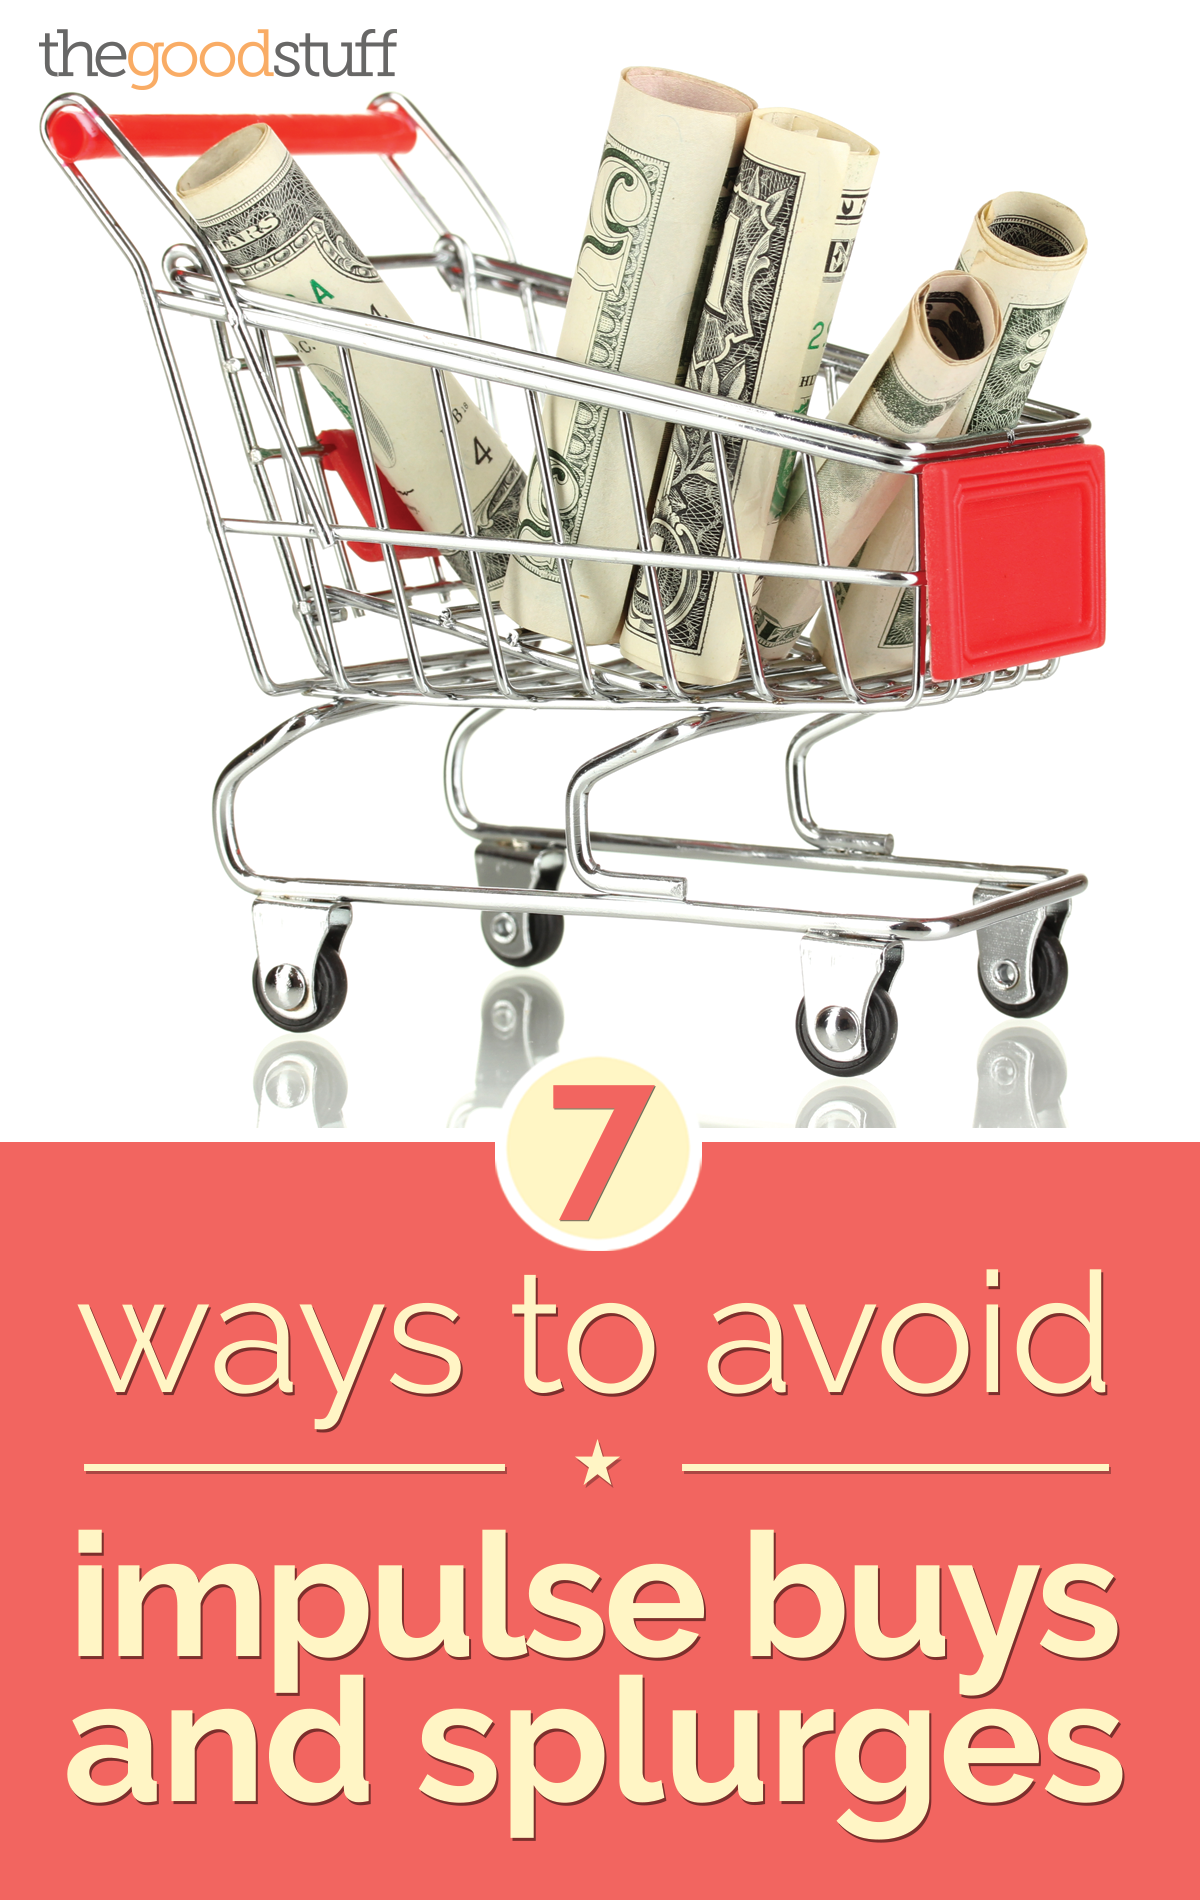 Put That Back! 7 Ways to Avoid Impulse Buying | thegoodstuff